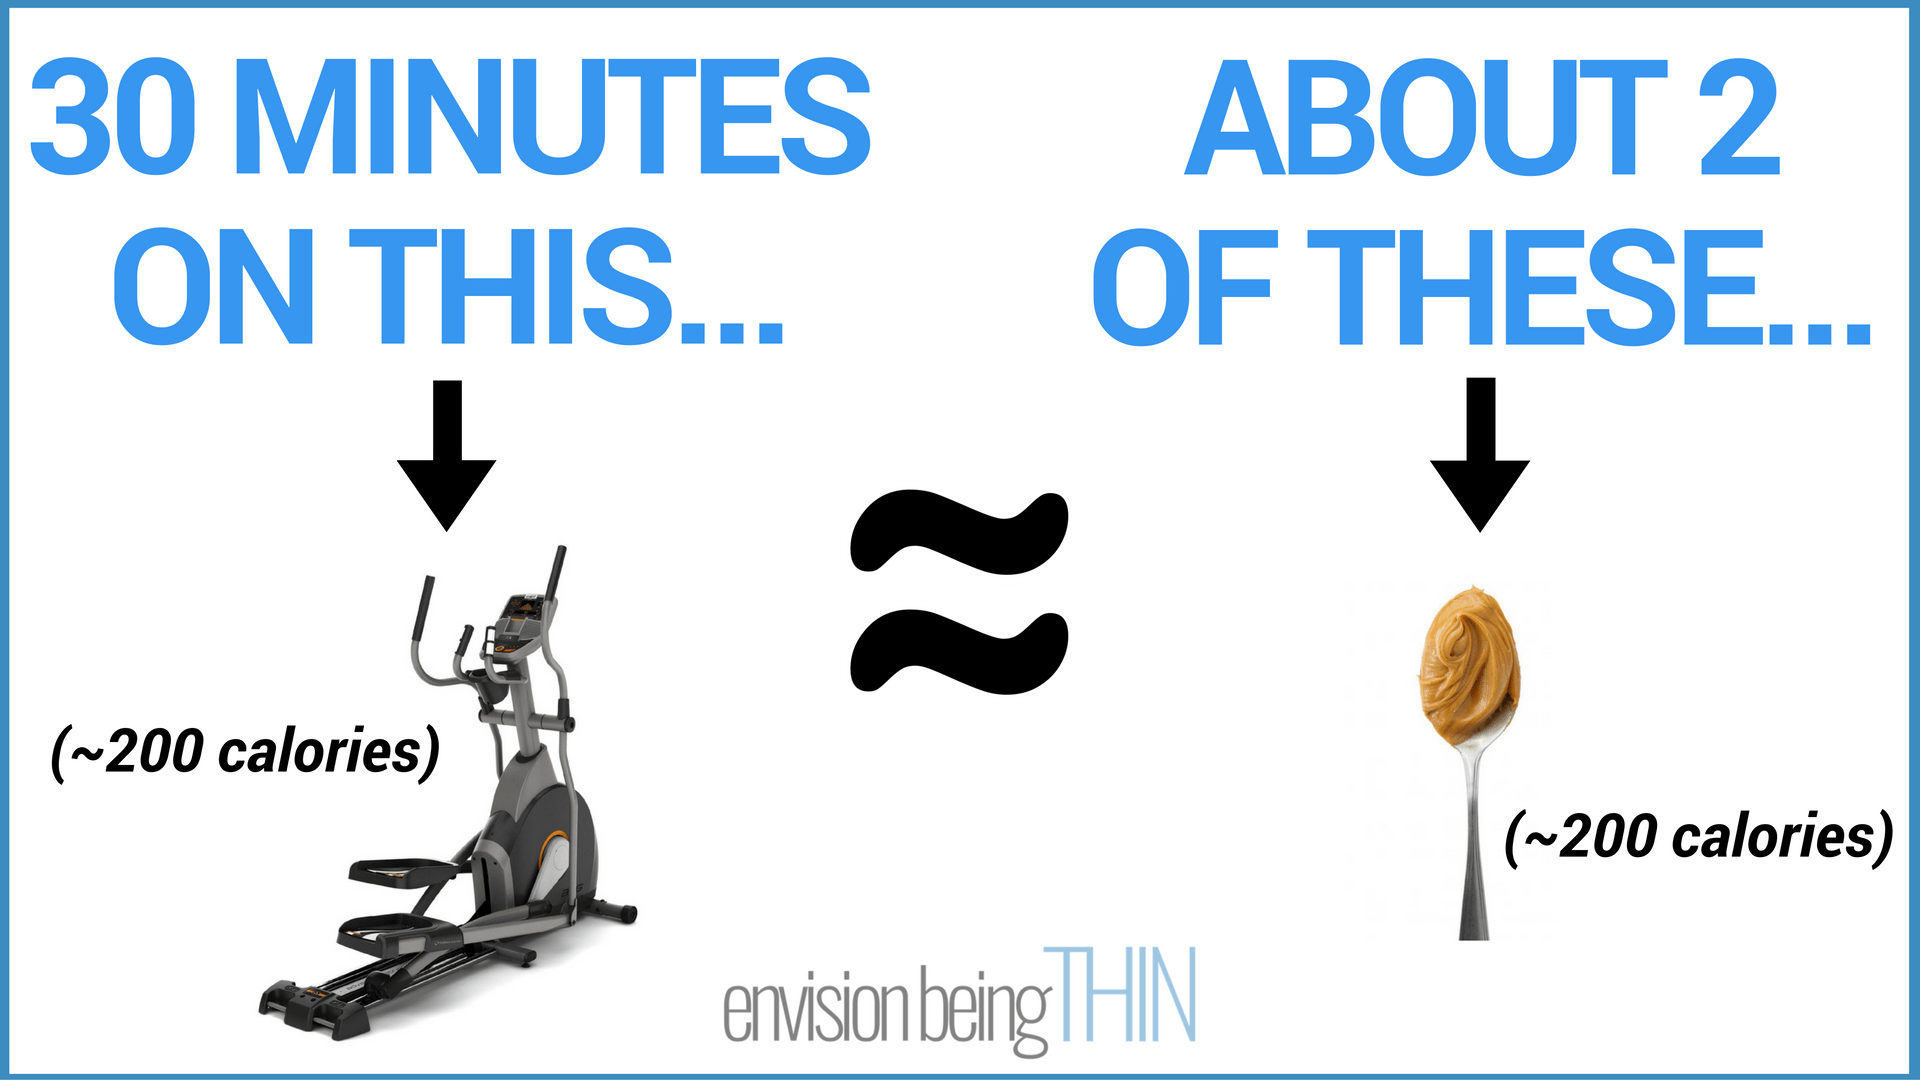 30-mins-cardio-equals-peanut-butter